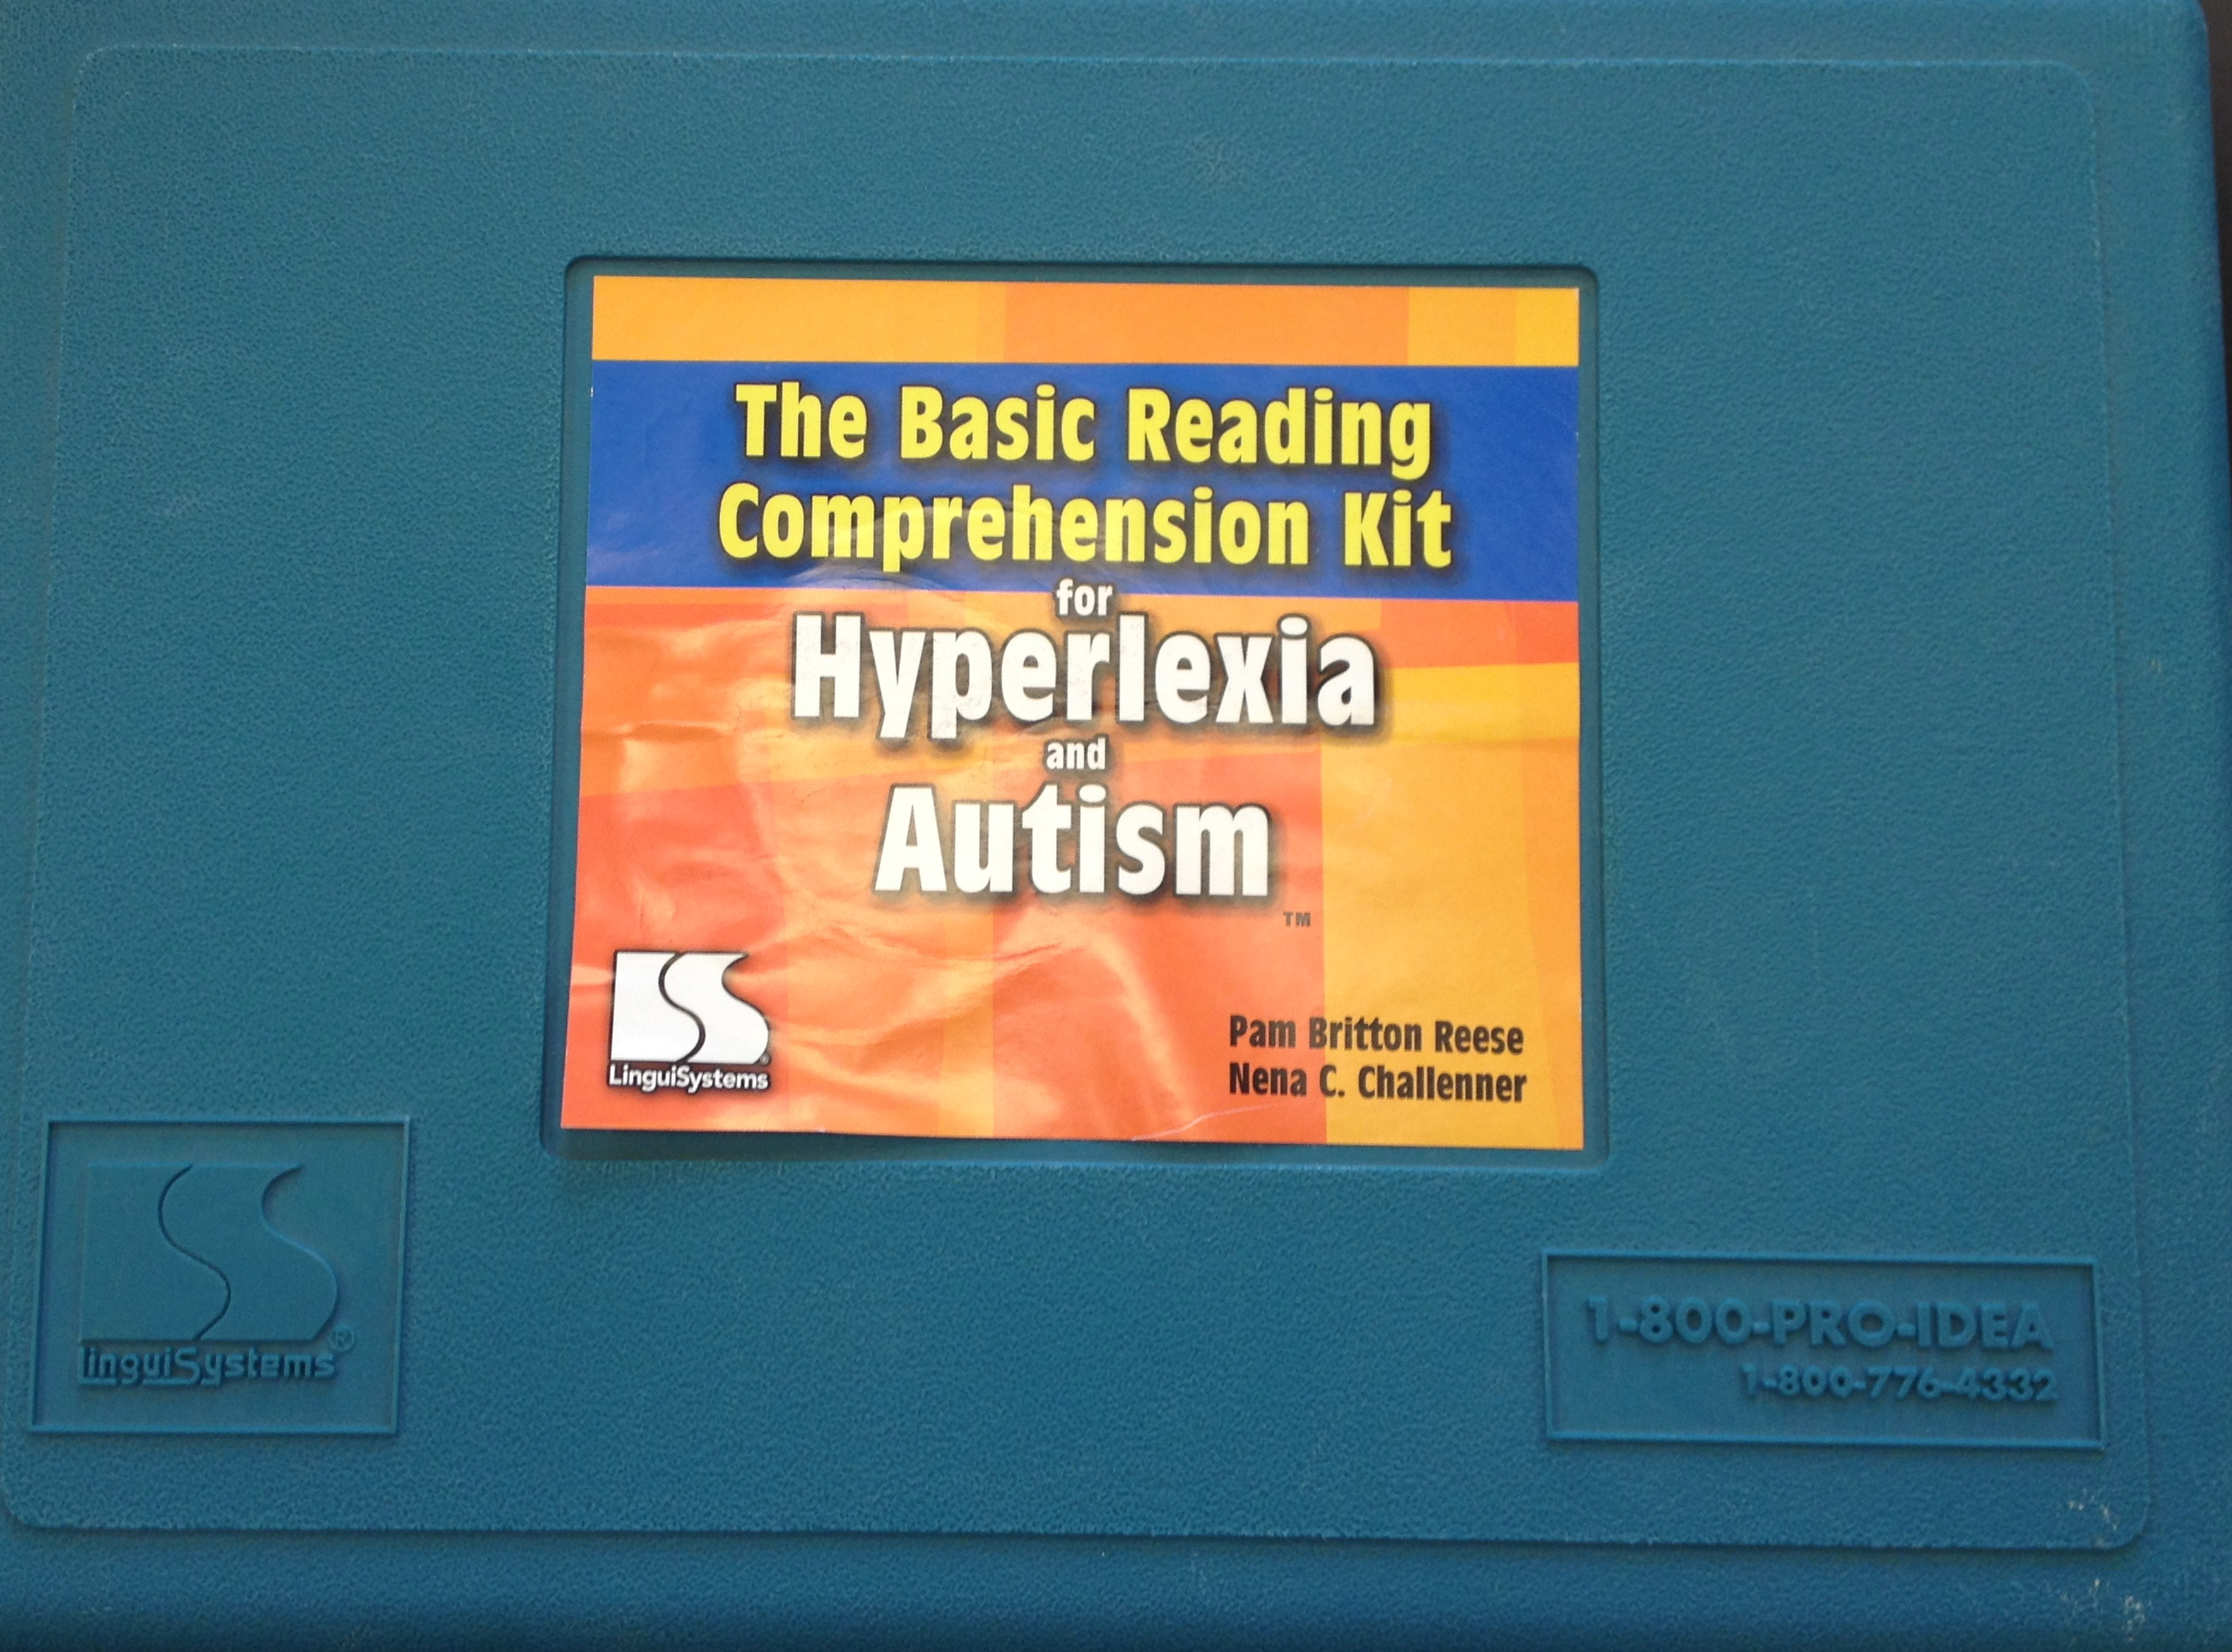 Worksheet Reading Comprehension Programs the basic reading comprehension kit for hyperlexia autism tap autism